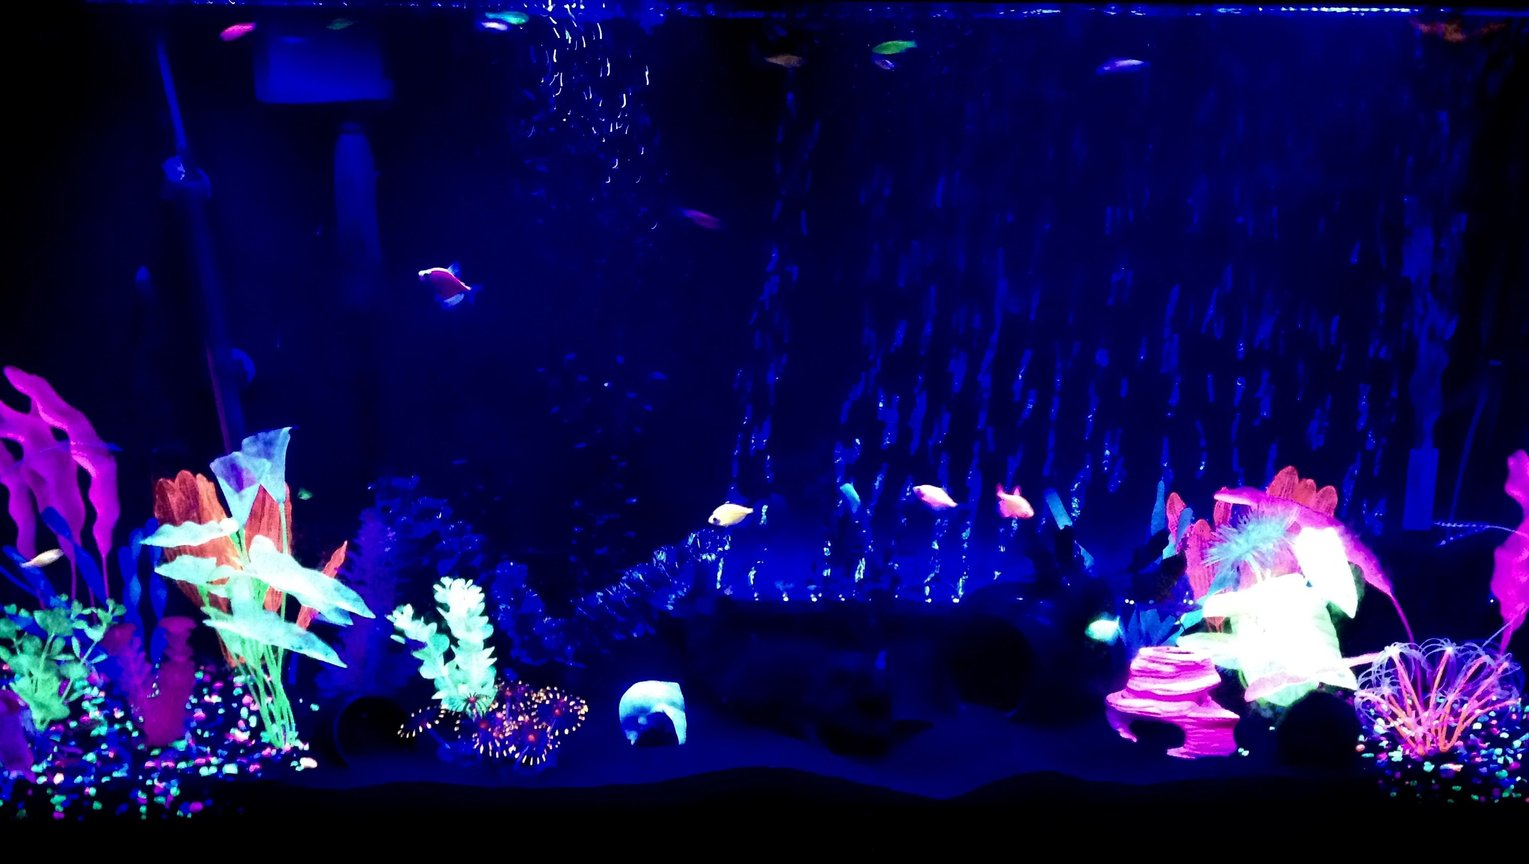 60 gallons freshwater fish tank (mostly fish and non-living decorations) - 60g freshwater Glofish tank with Glofish danios, Glofish tetras and albino Cory cats.